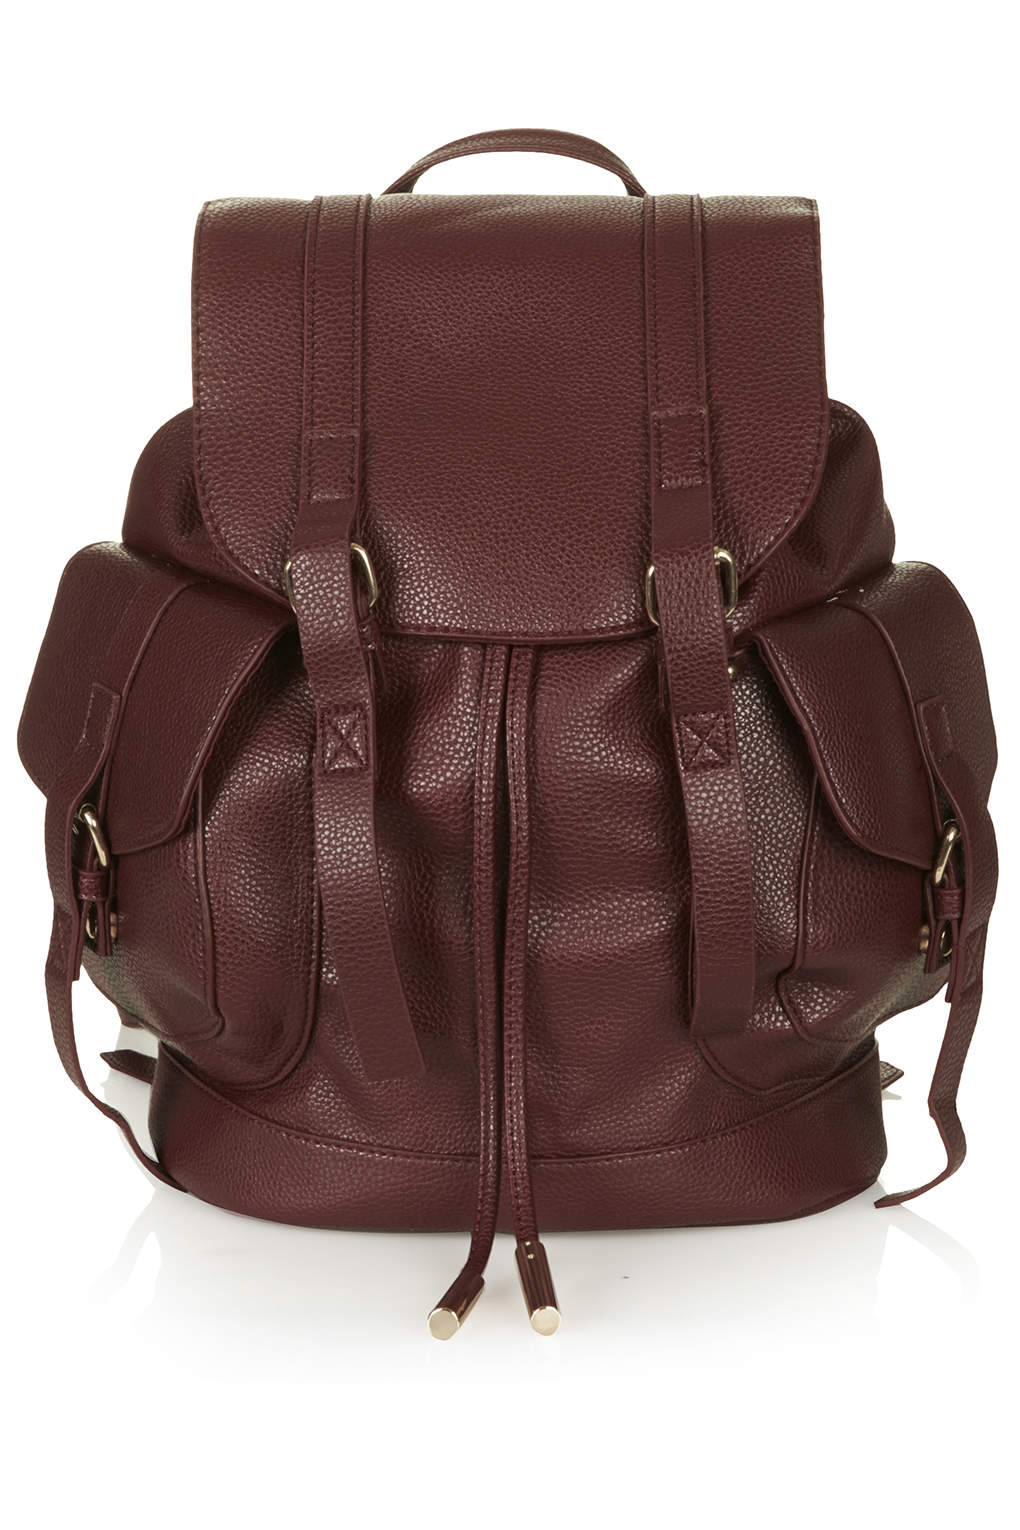 Grainy faux leather pocket backpack